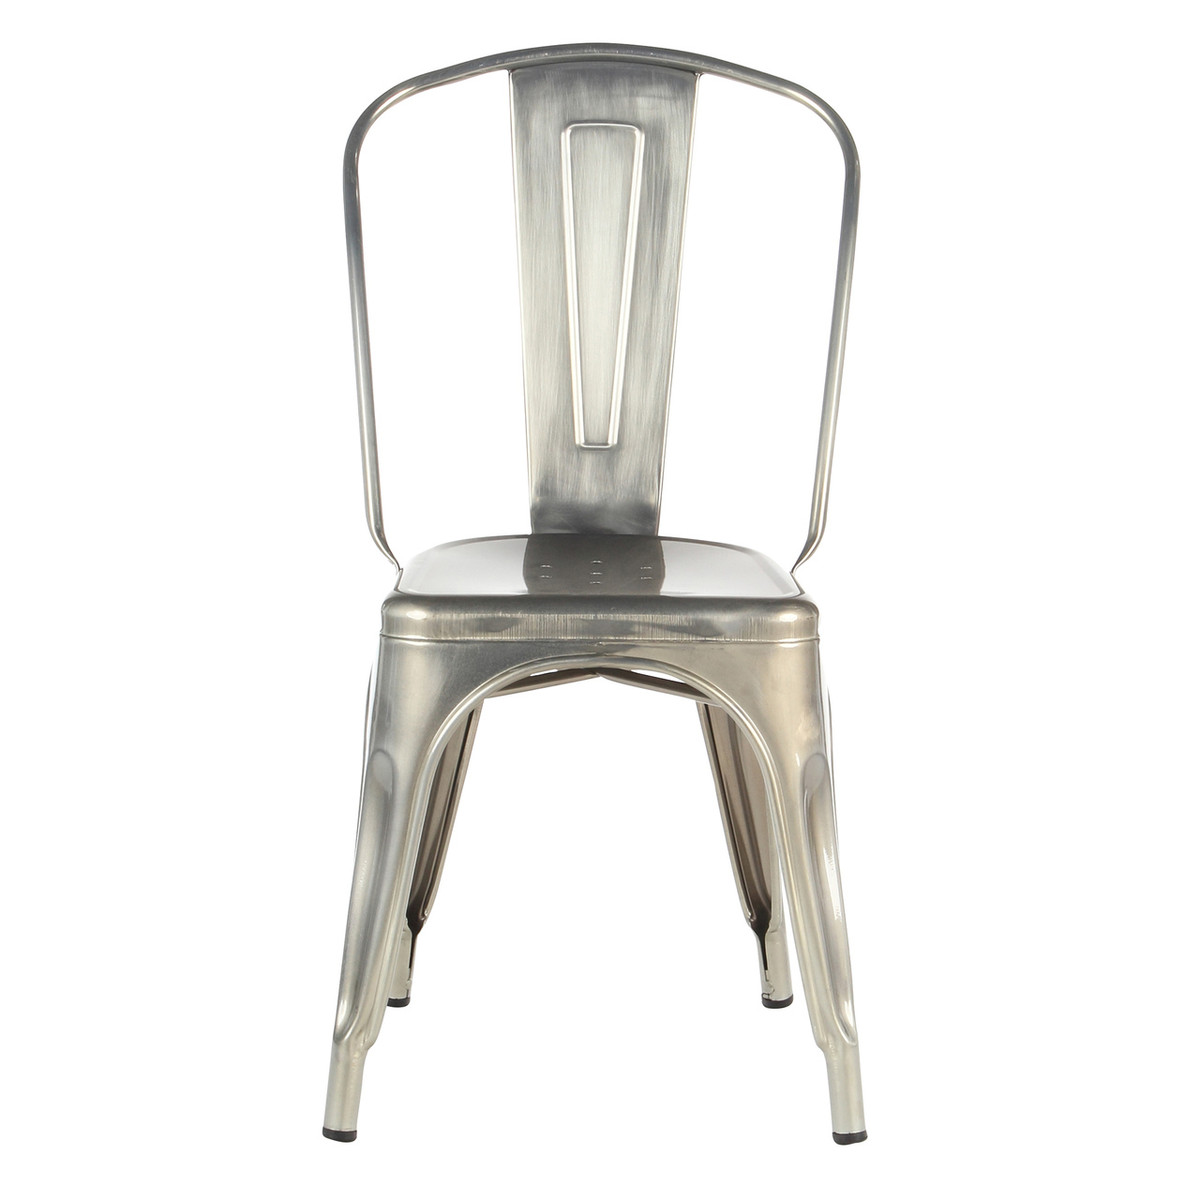 metal industrial cafe dining chair in brushed steel by joseph allen home